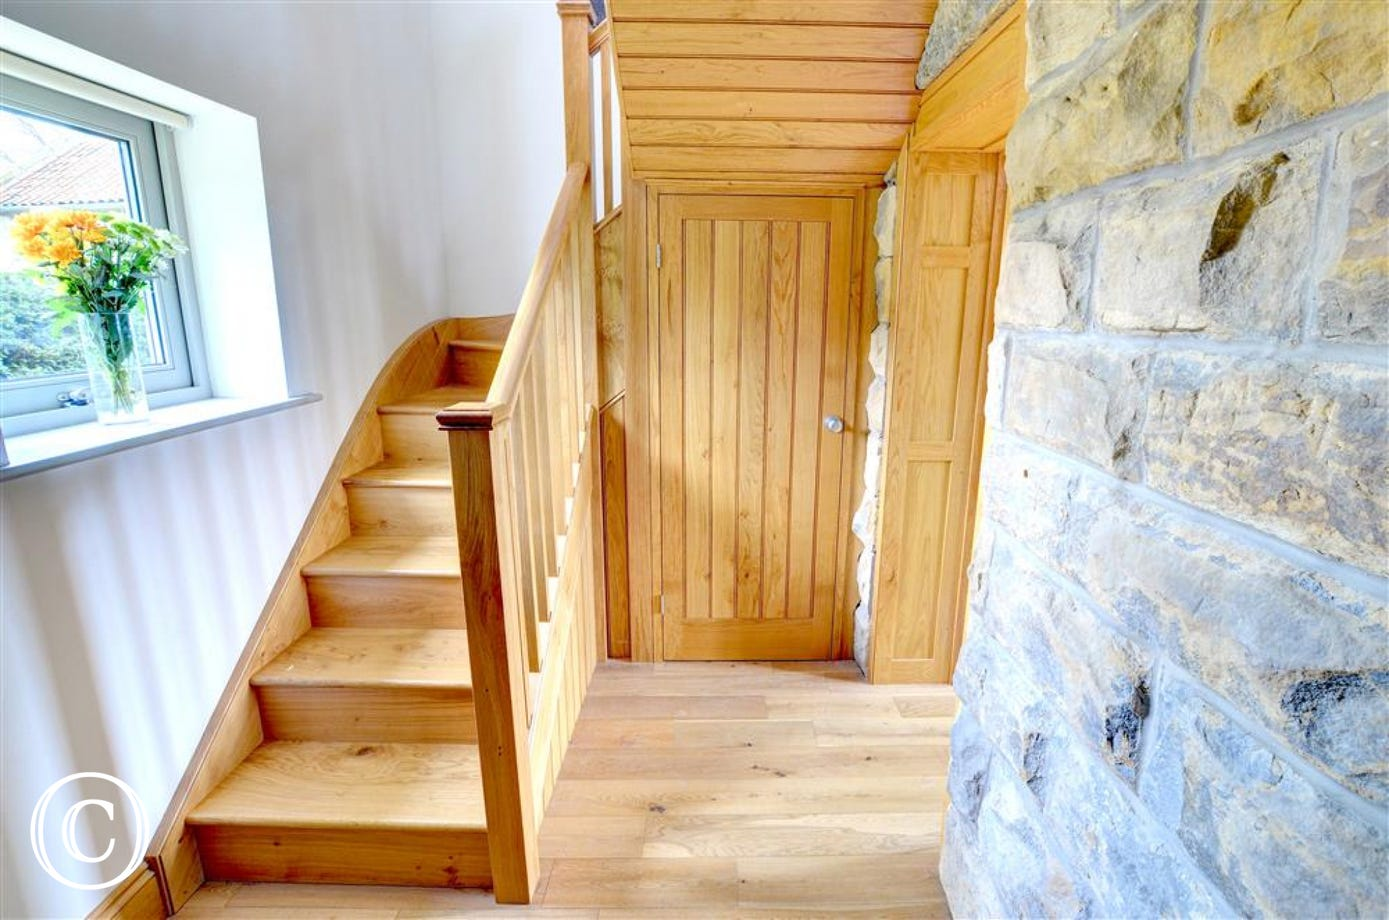 Hallway has open stone wall and beautiful solid wood stairs.